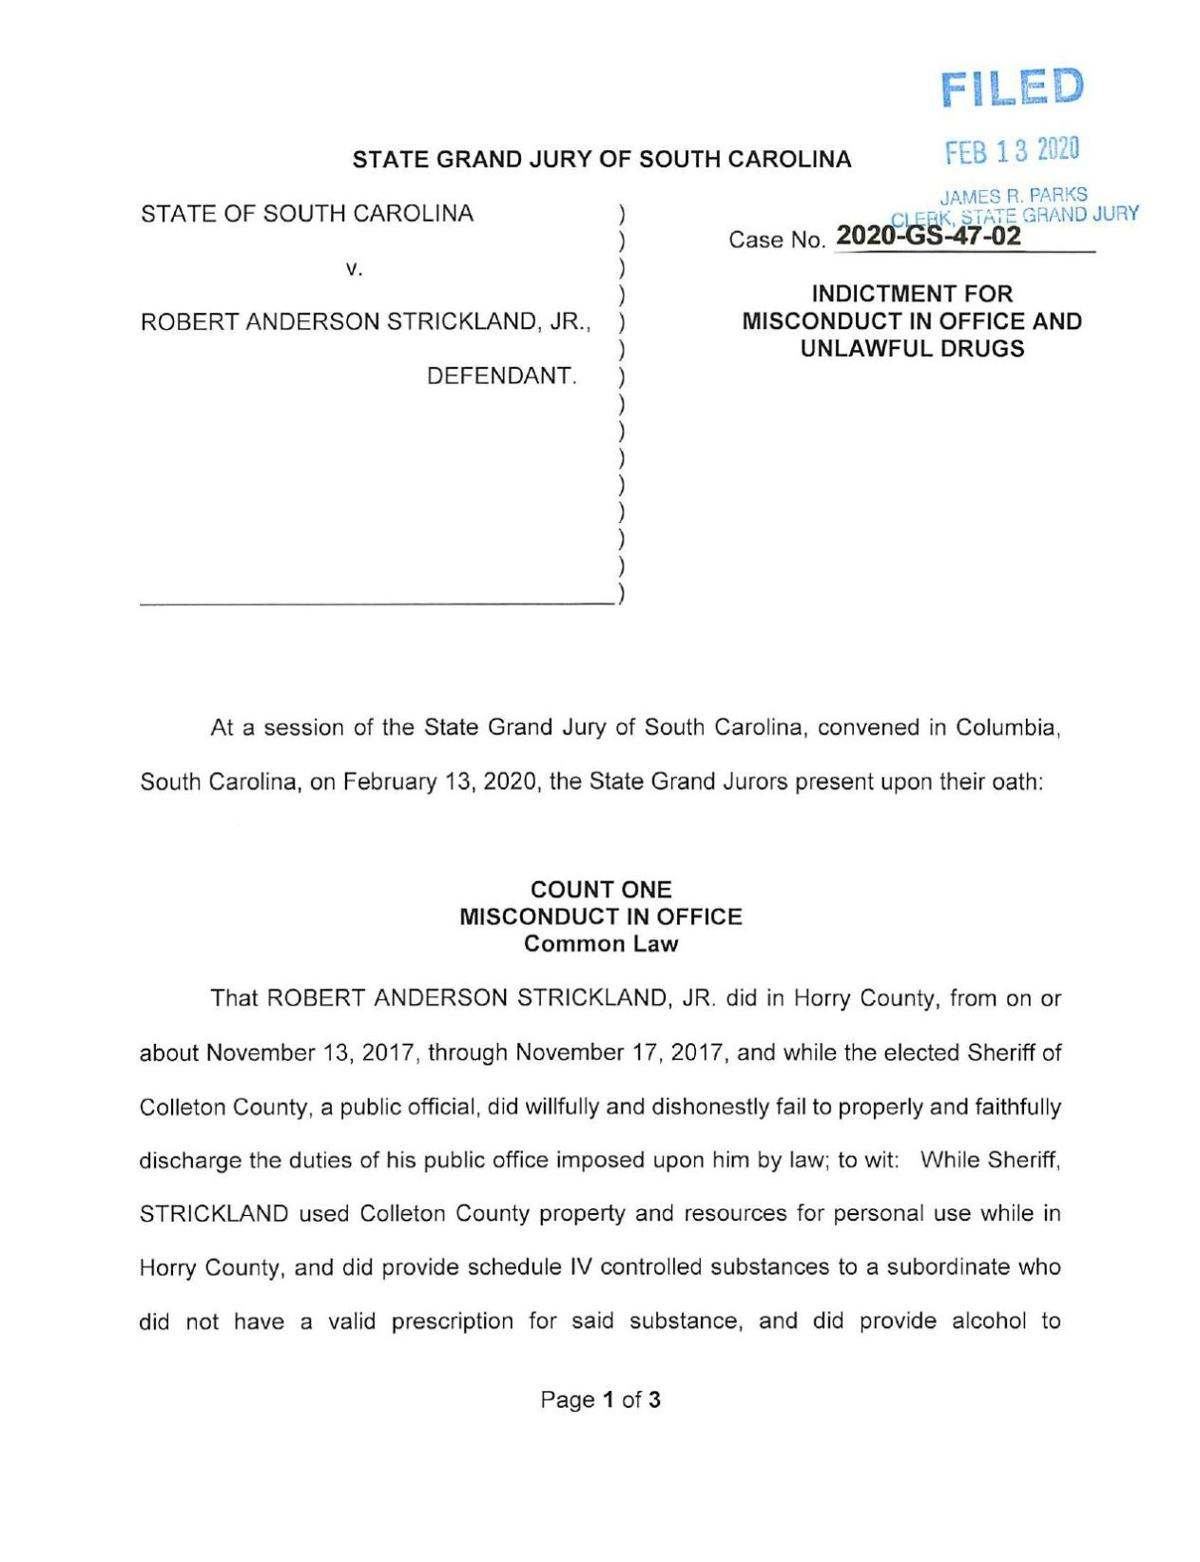 Andy Strickland indictments